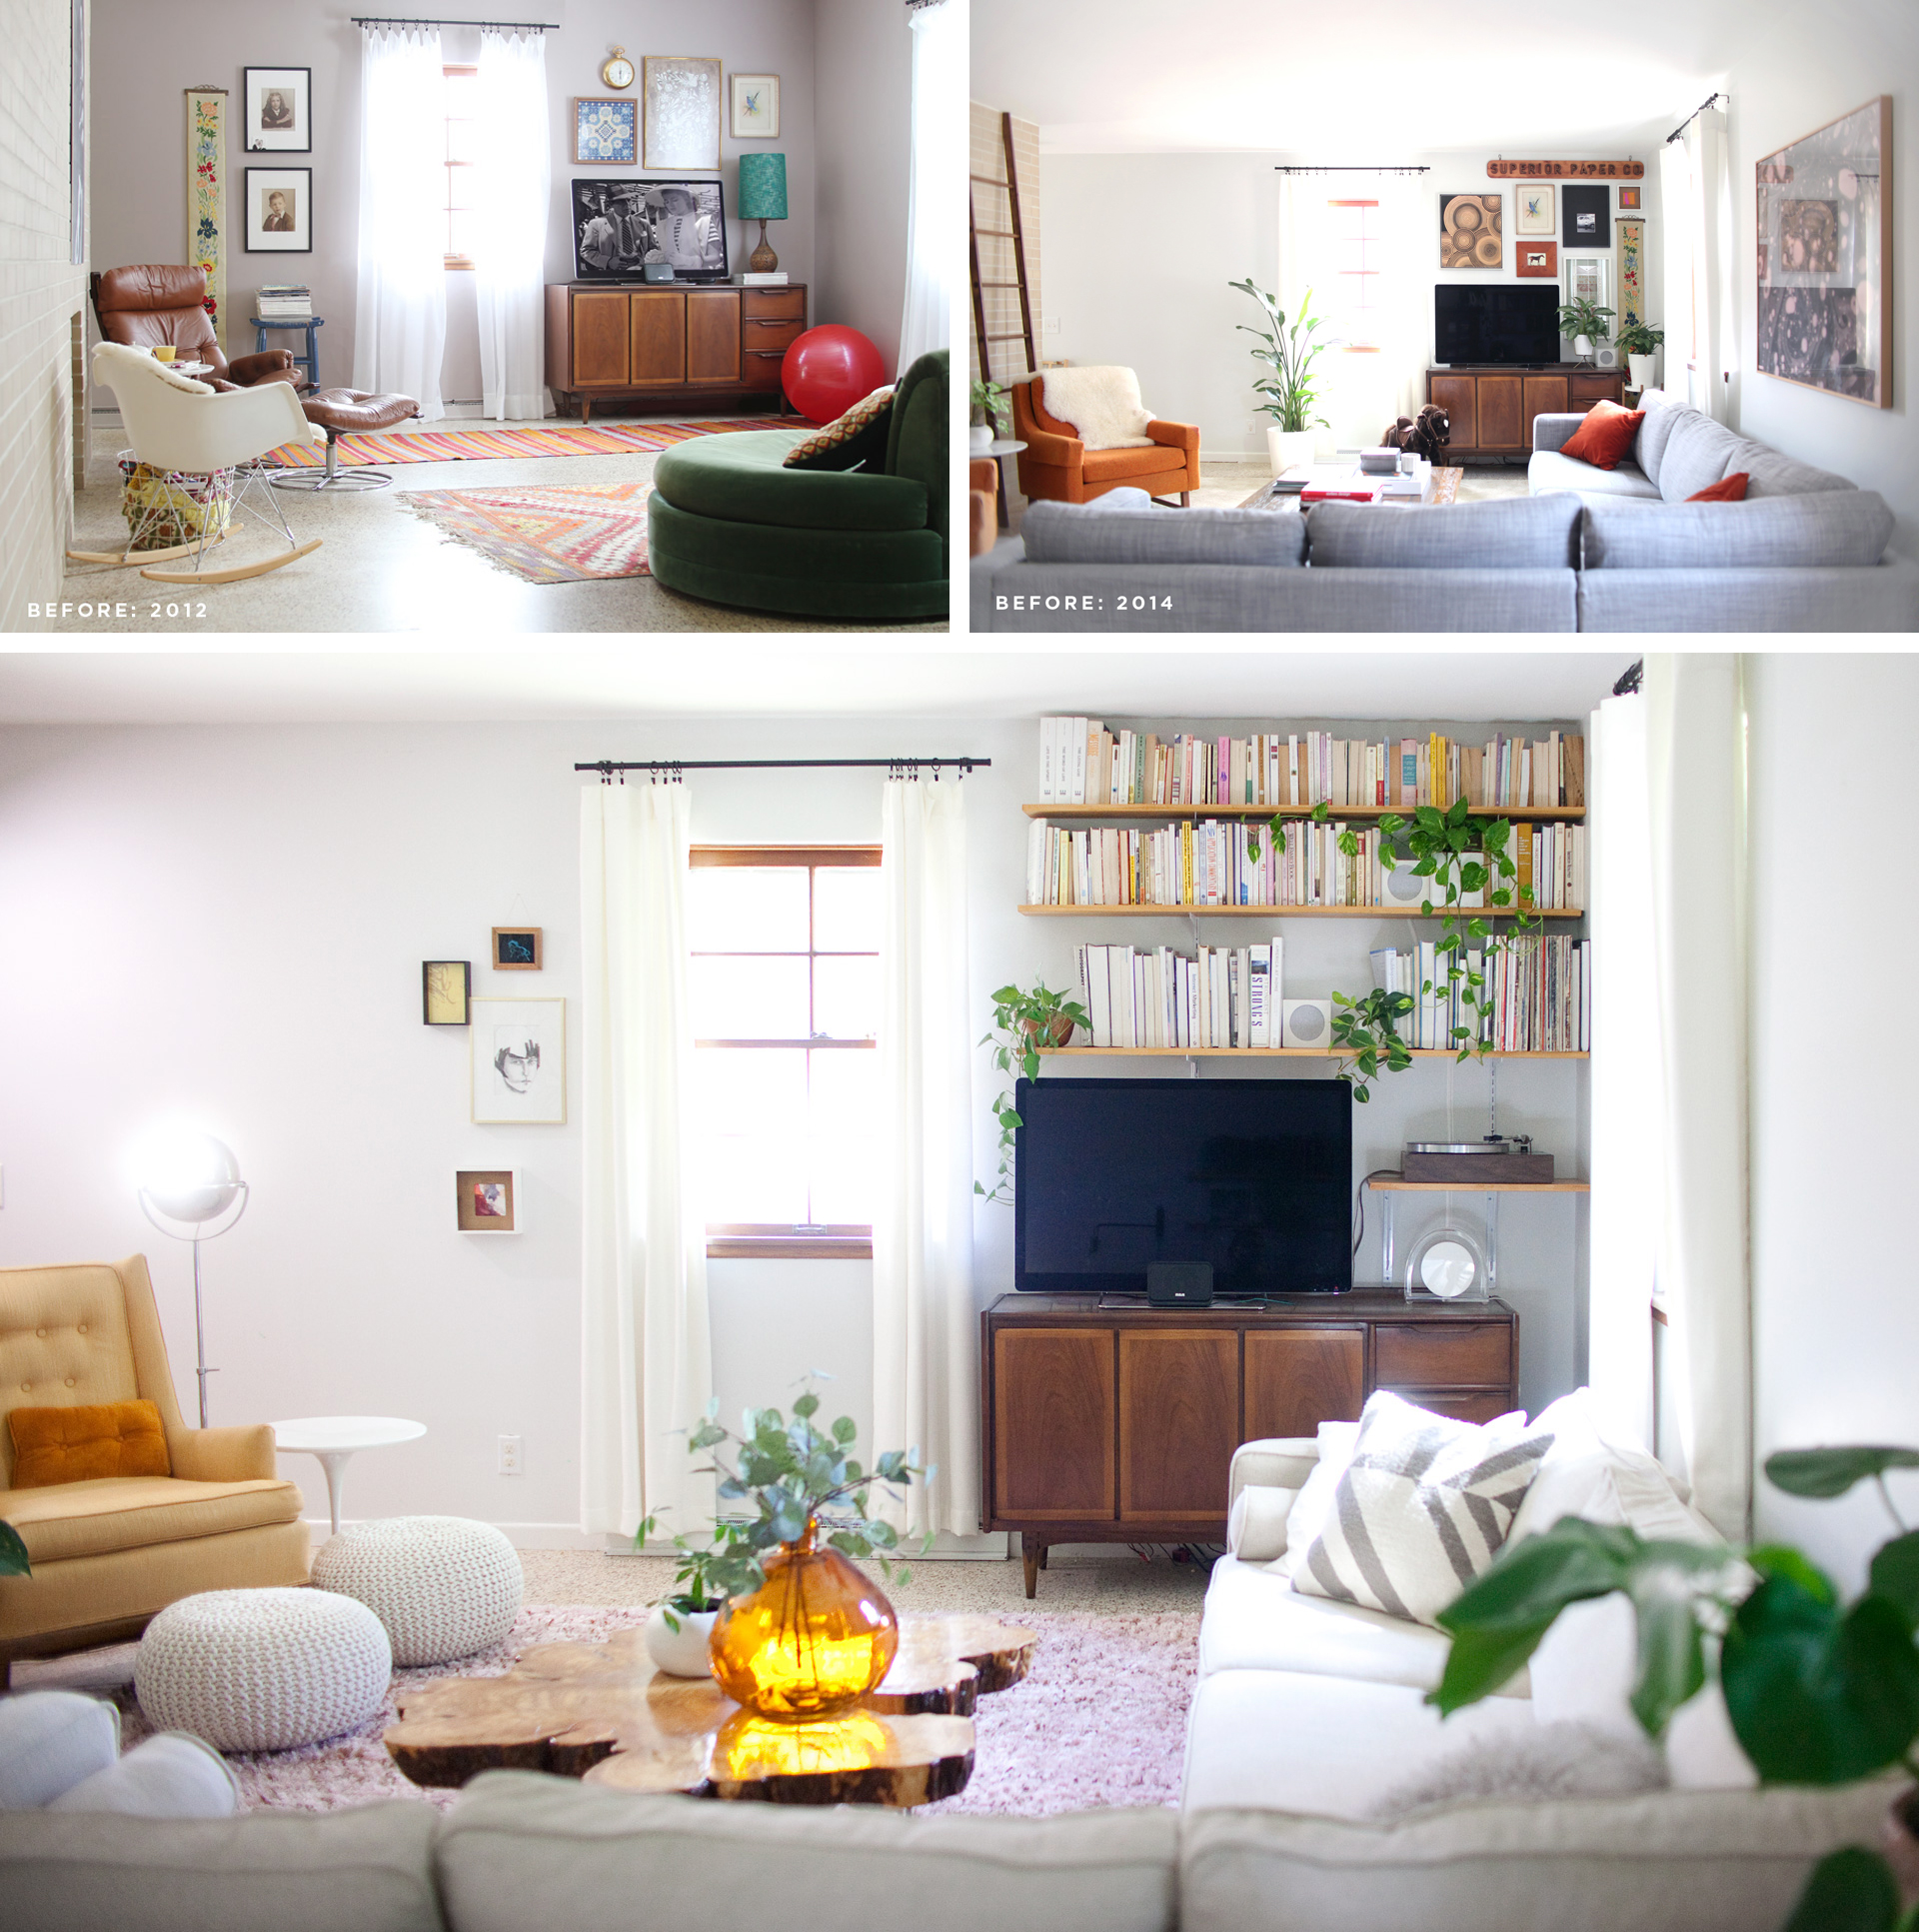 Easy Tips for Redecorating a Room